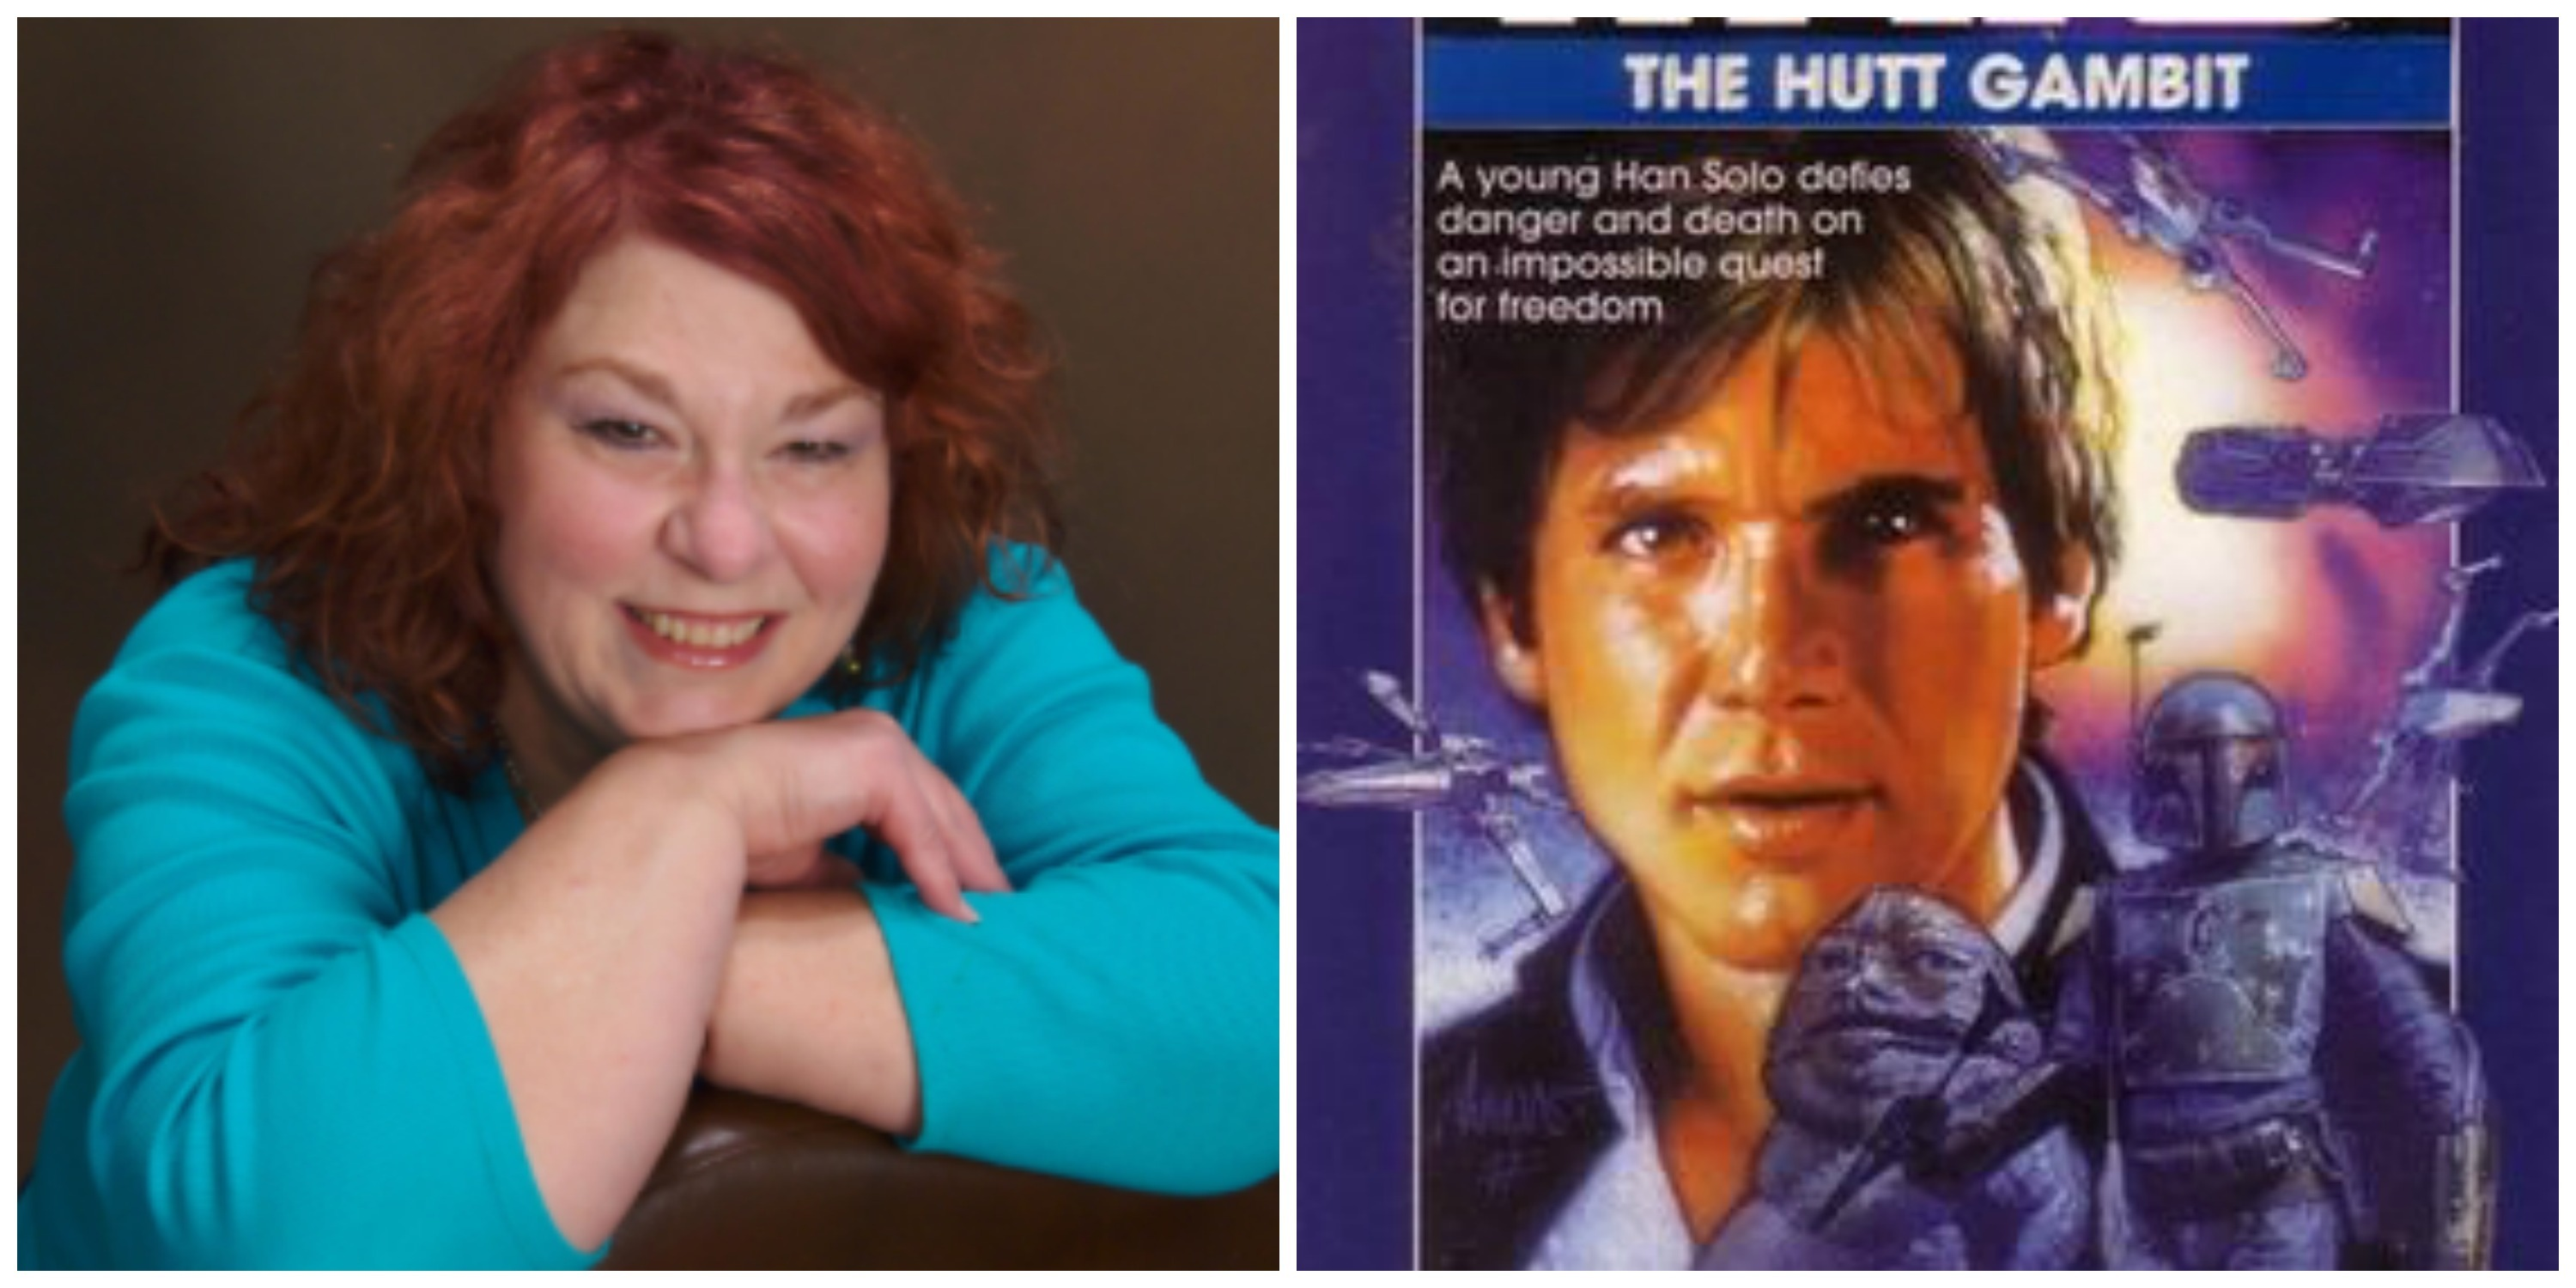 LEFT: the late A.C. Crispin. RIGHT: Cover from her second Han Solo novel, 'The Hutt Gambit.'